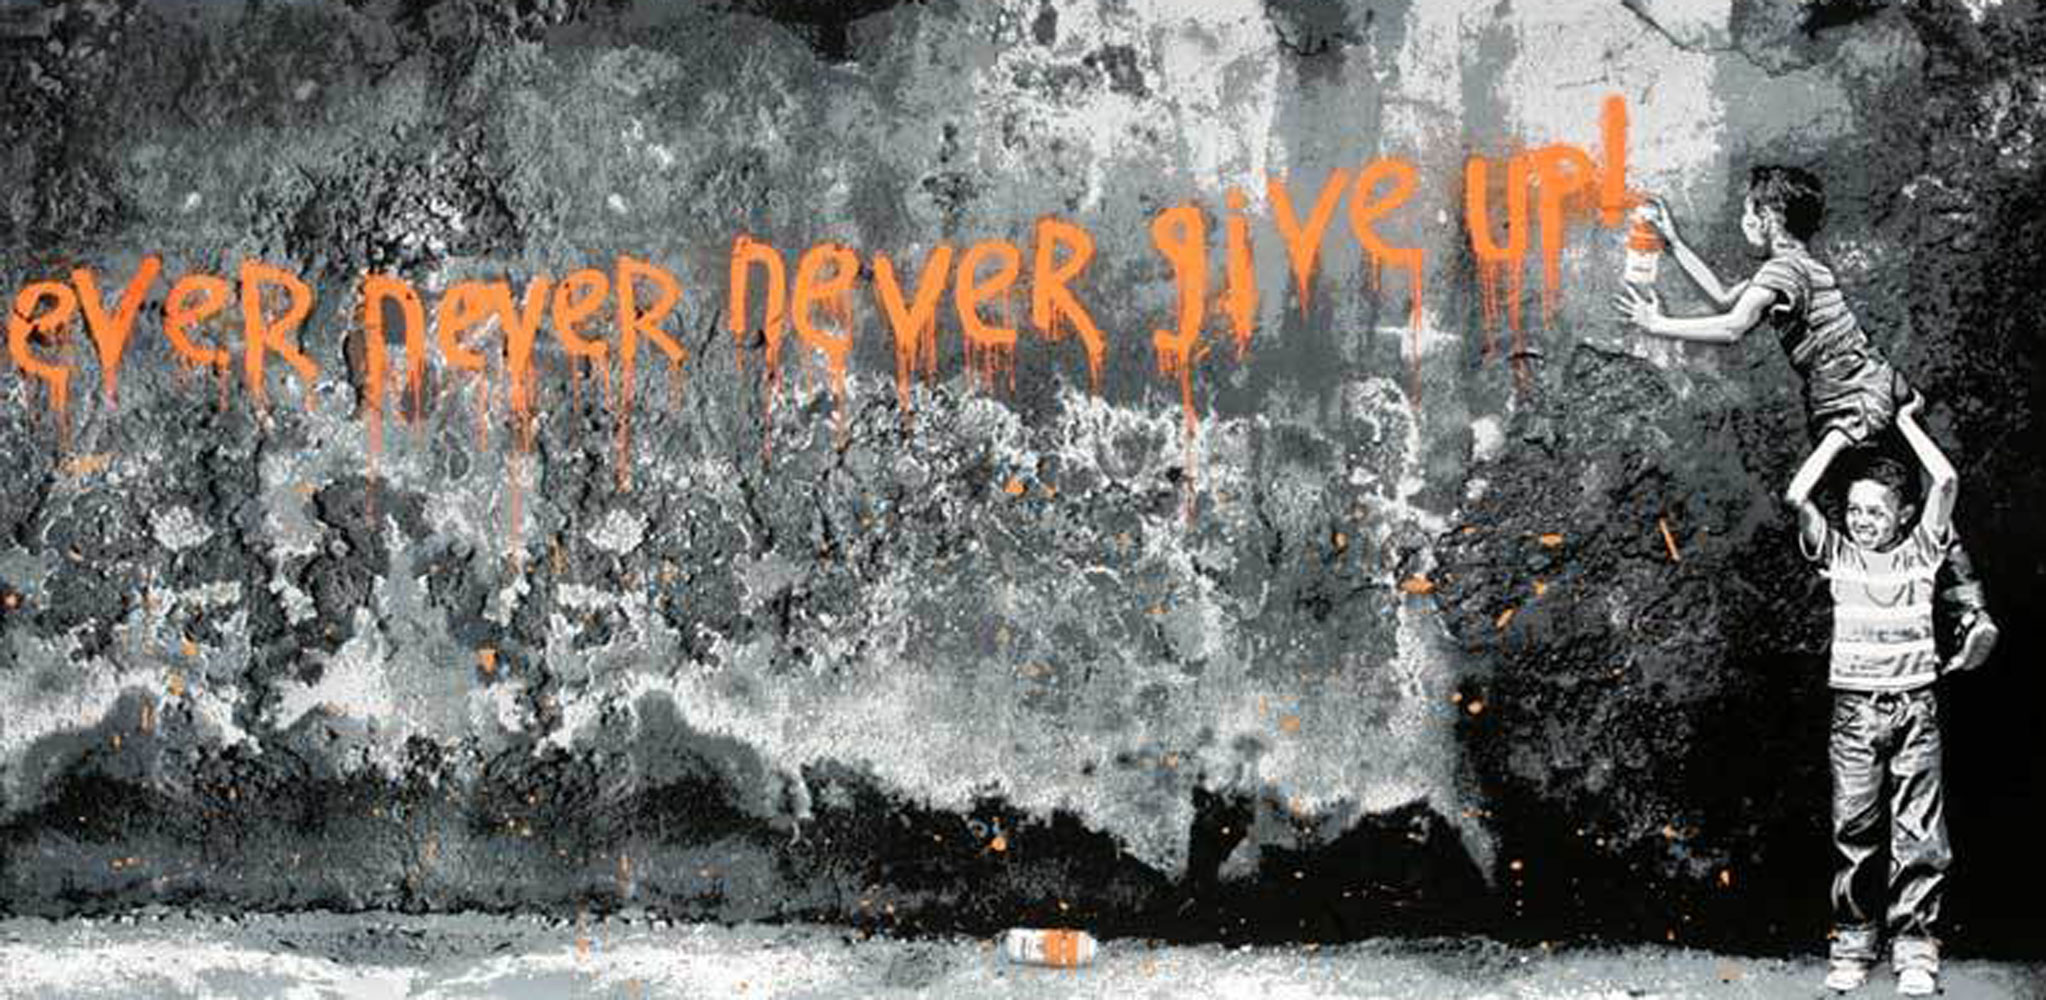 Never, Never, Never Give Up 2011